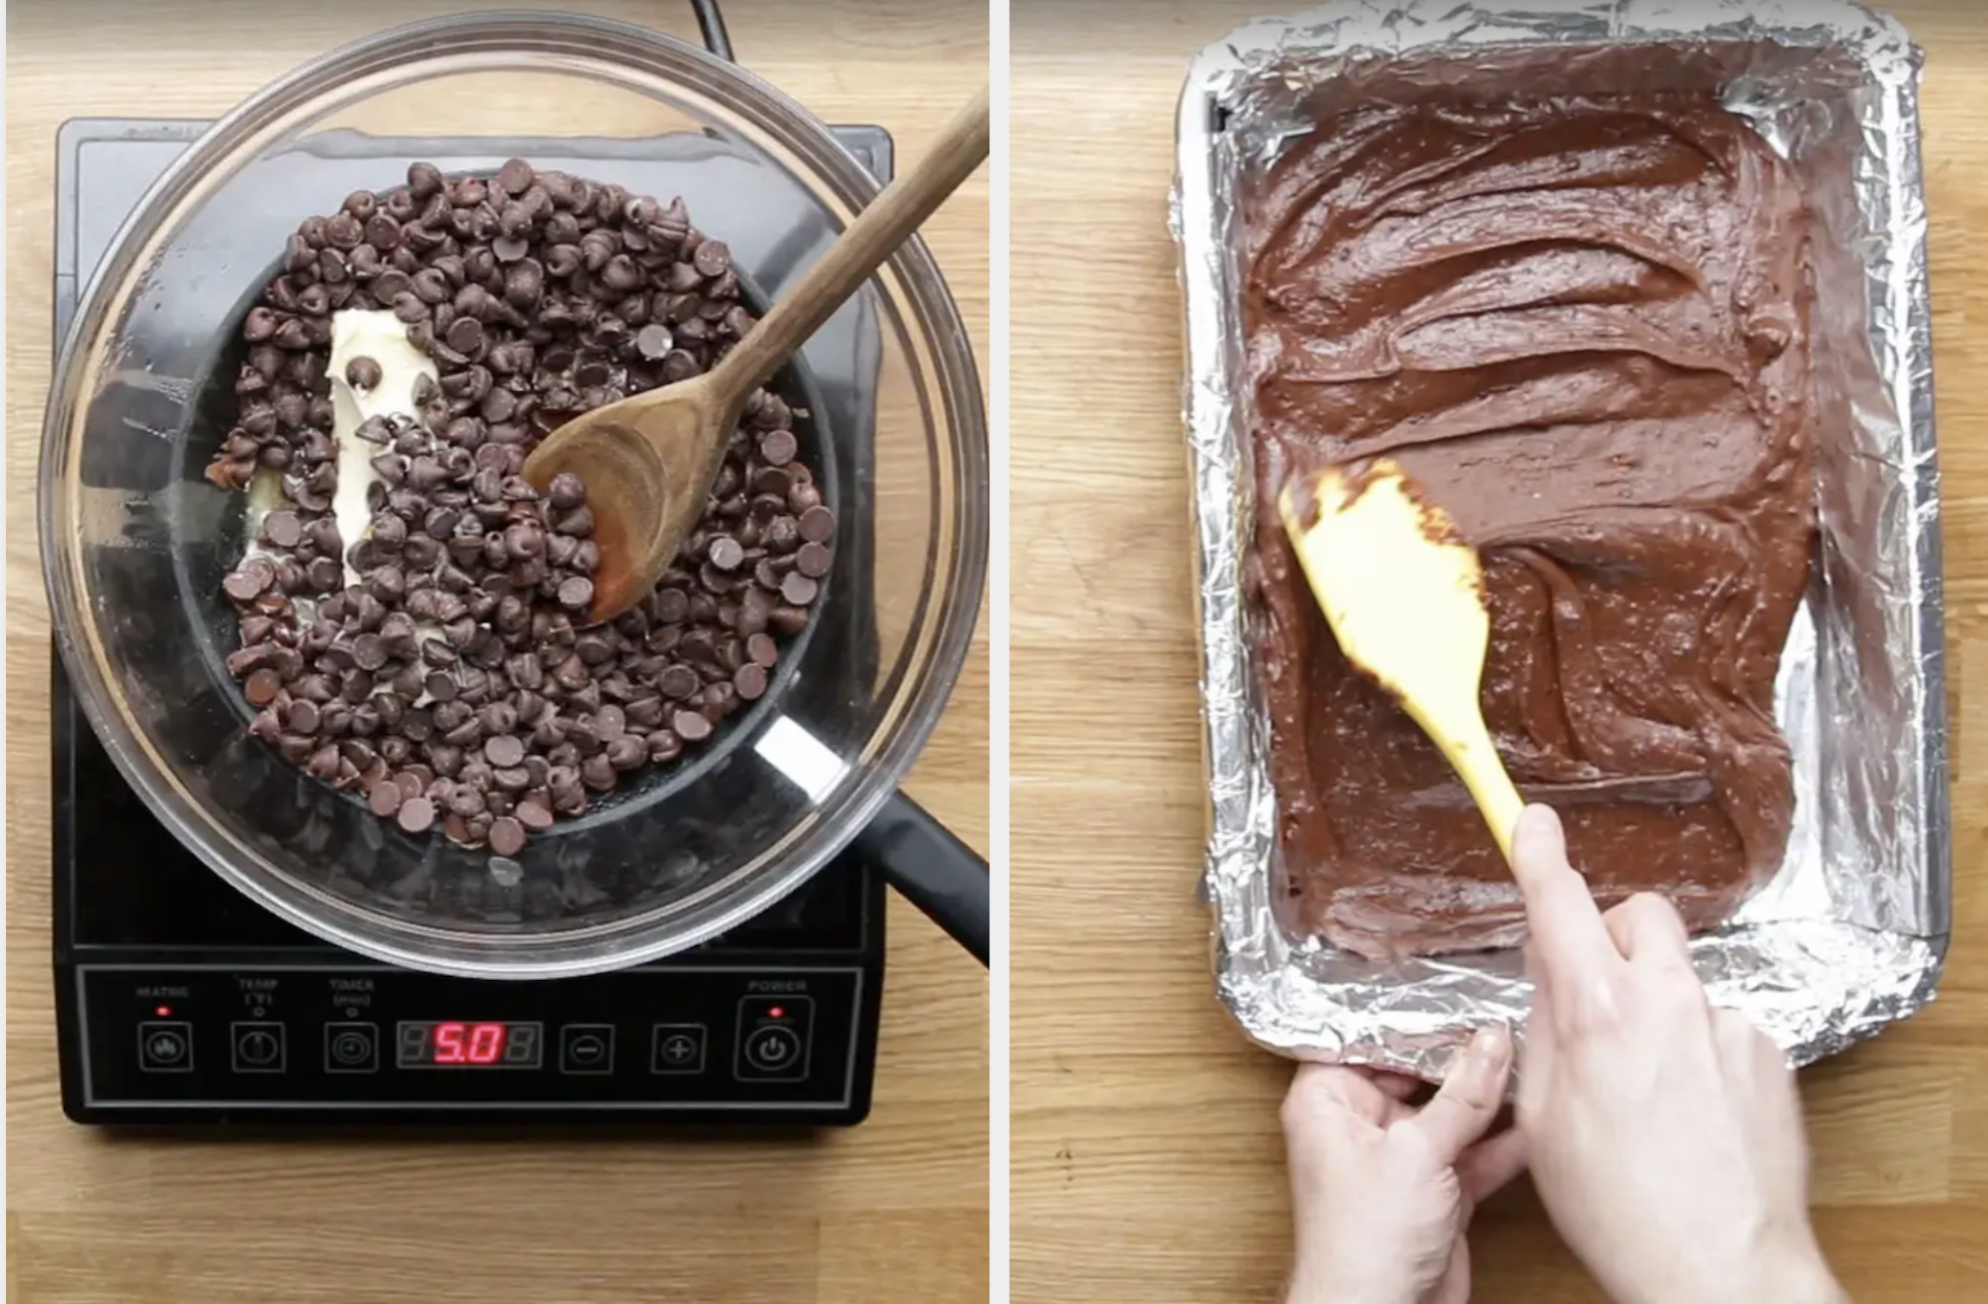 Chocolate being melted over a burner, next brownie batter being poured into a pan